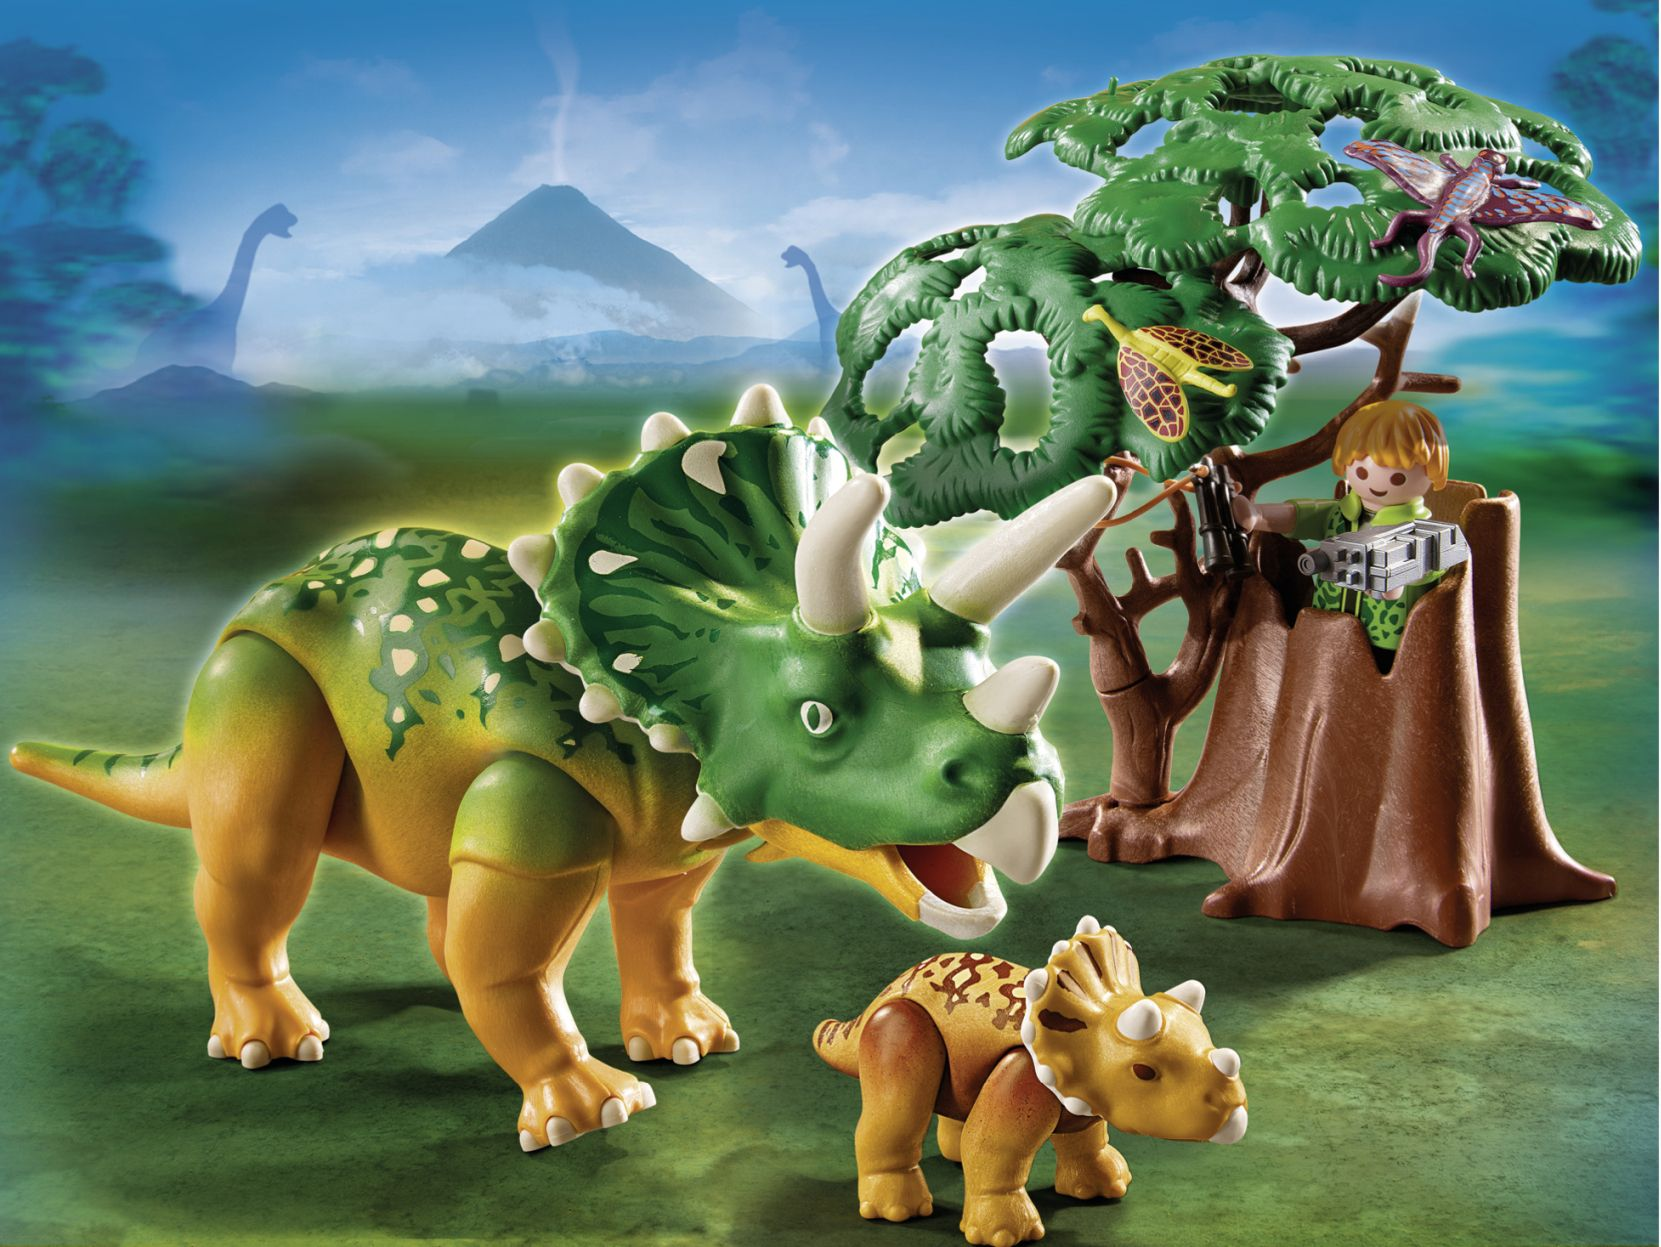 Explorer and Triceratops with Baby